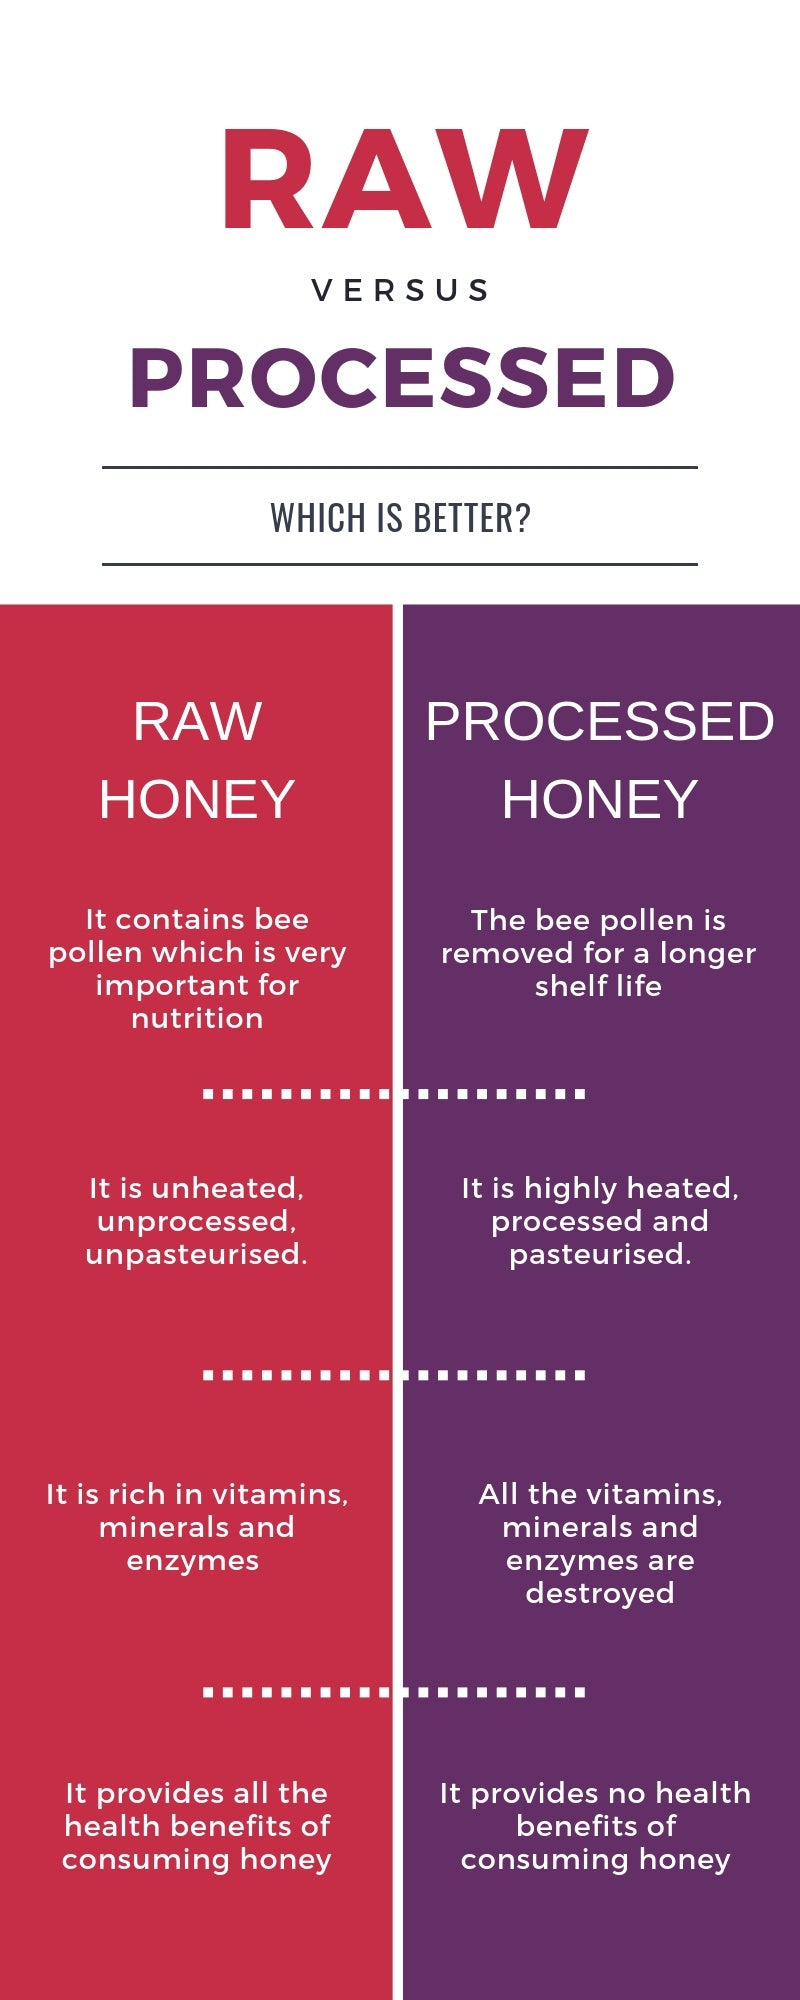 Raw honey vs Processed honey